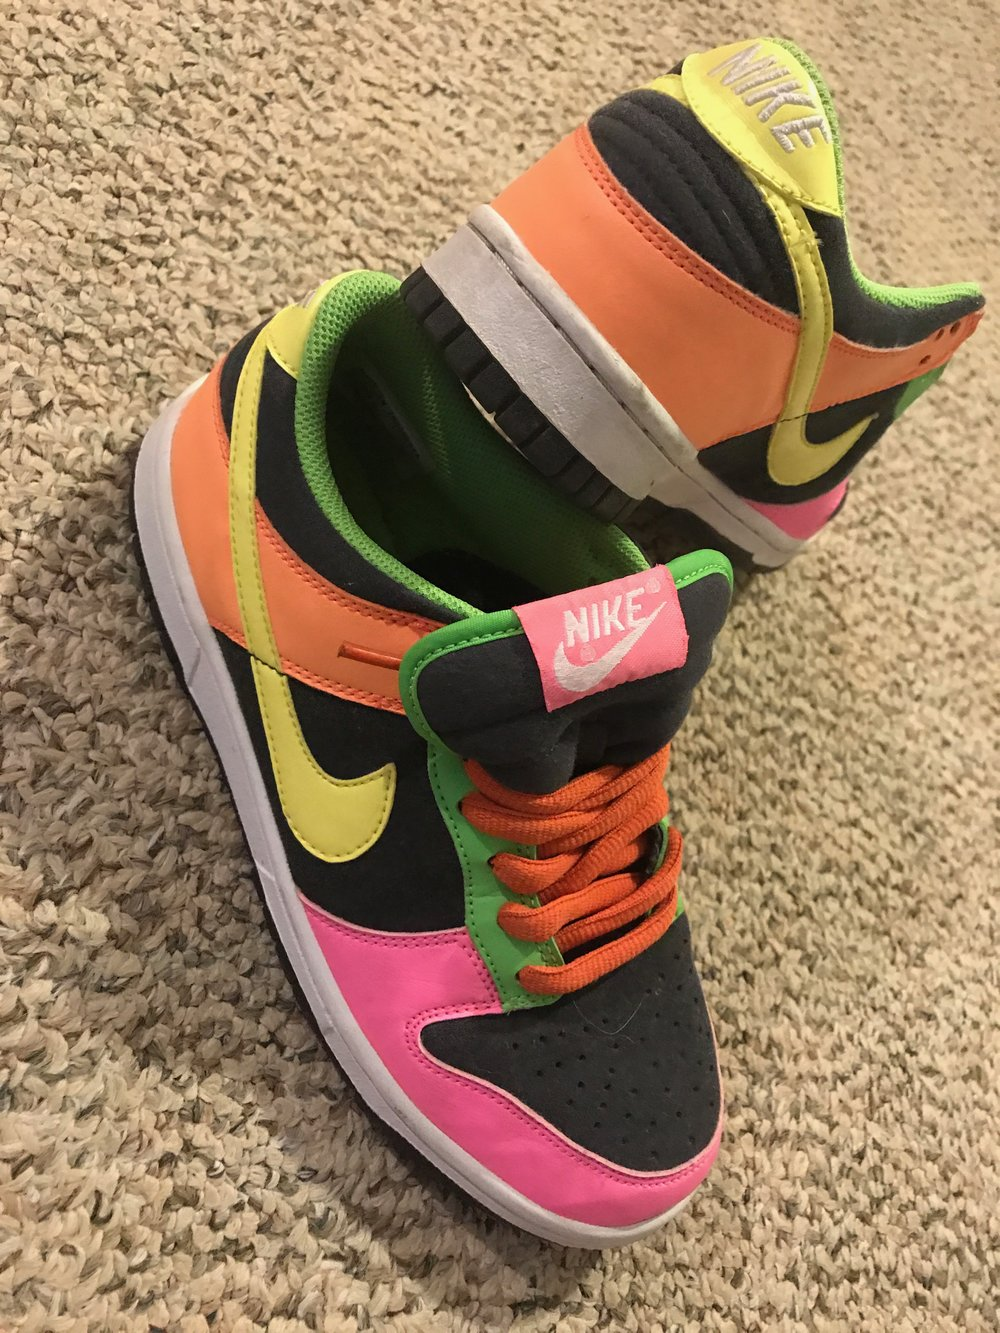 $50 LIKE NEW Nike Dunk SB Low - Size 7.5 YOUTHA few dance studio scuffs but still in great condition with Orange SB lacesRetail: $125